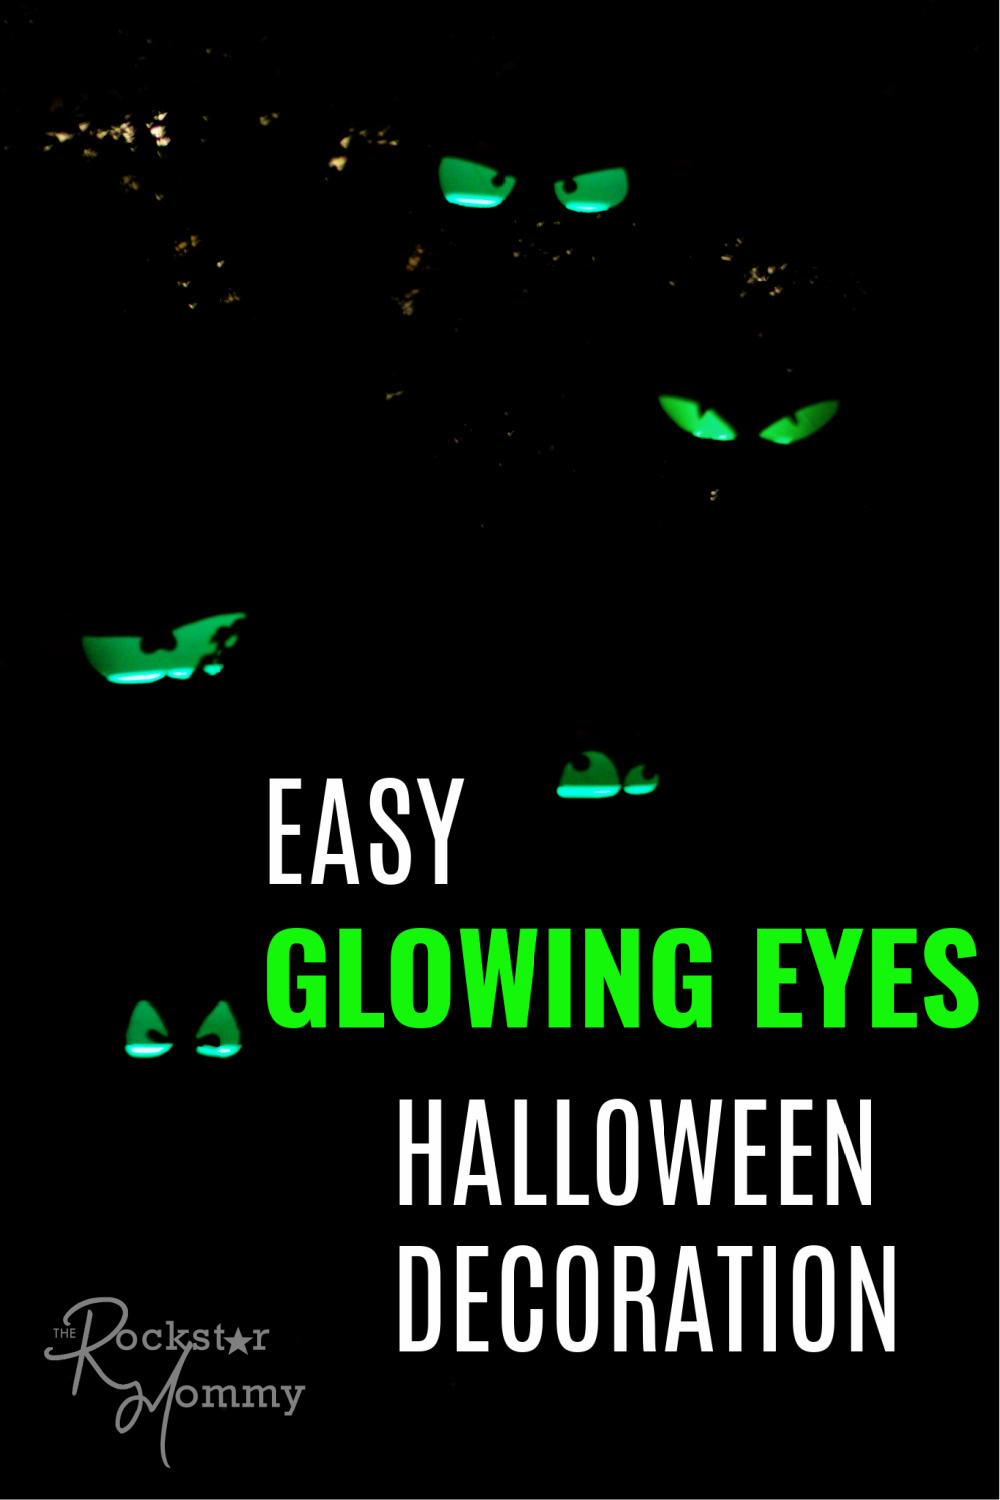 DIY glowing eyes in dark bushes